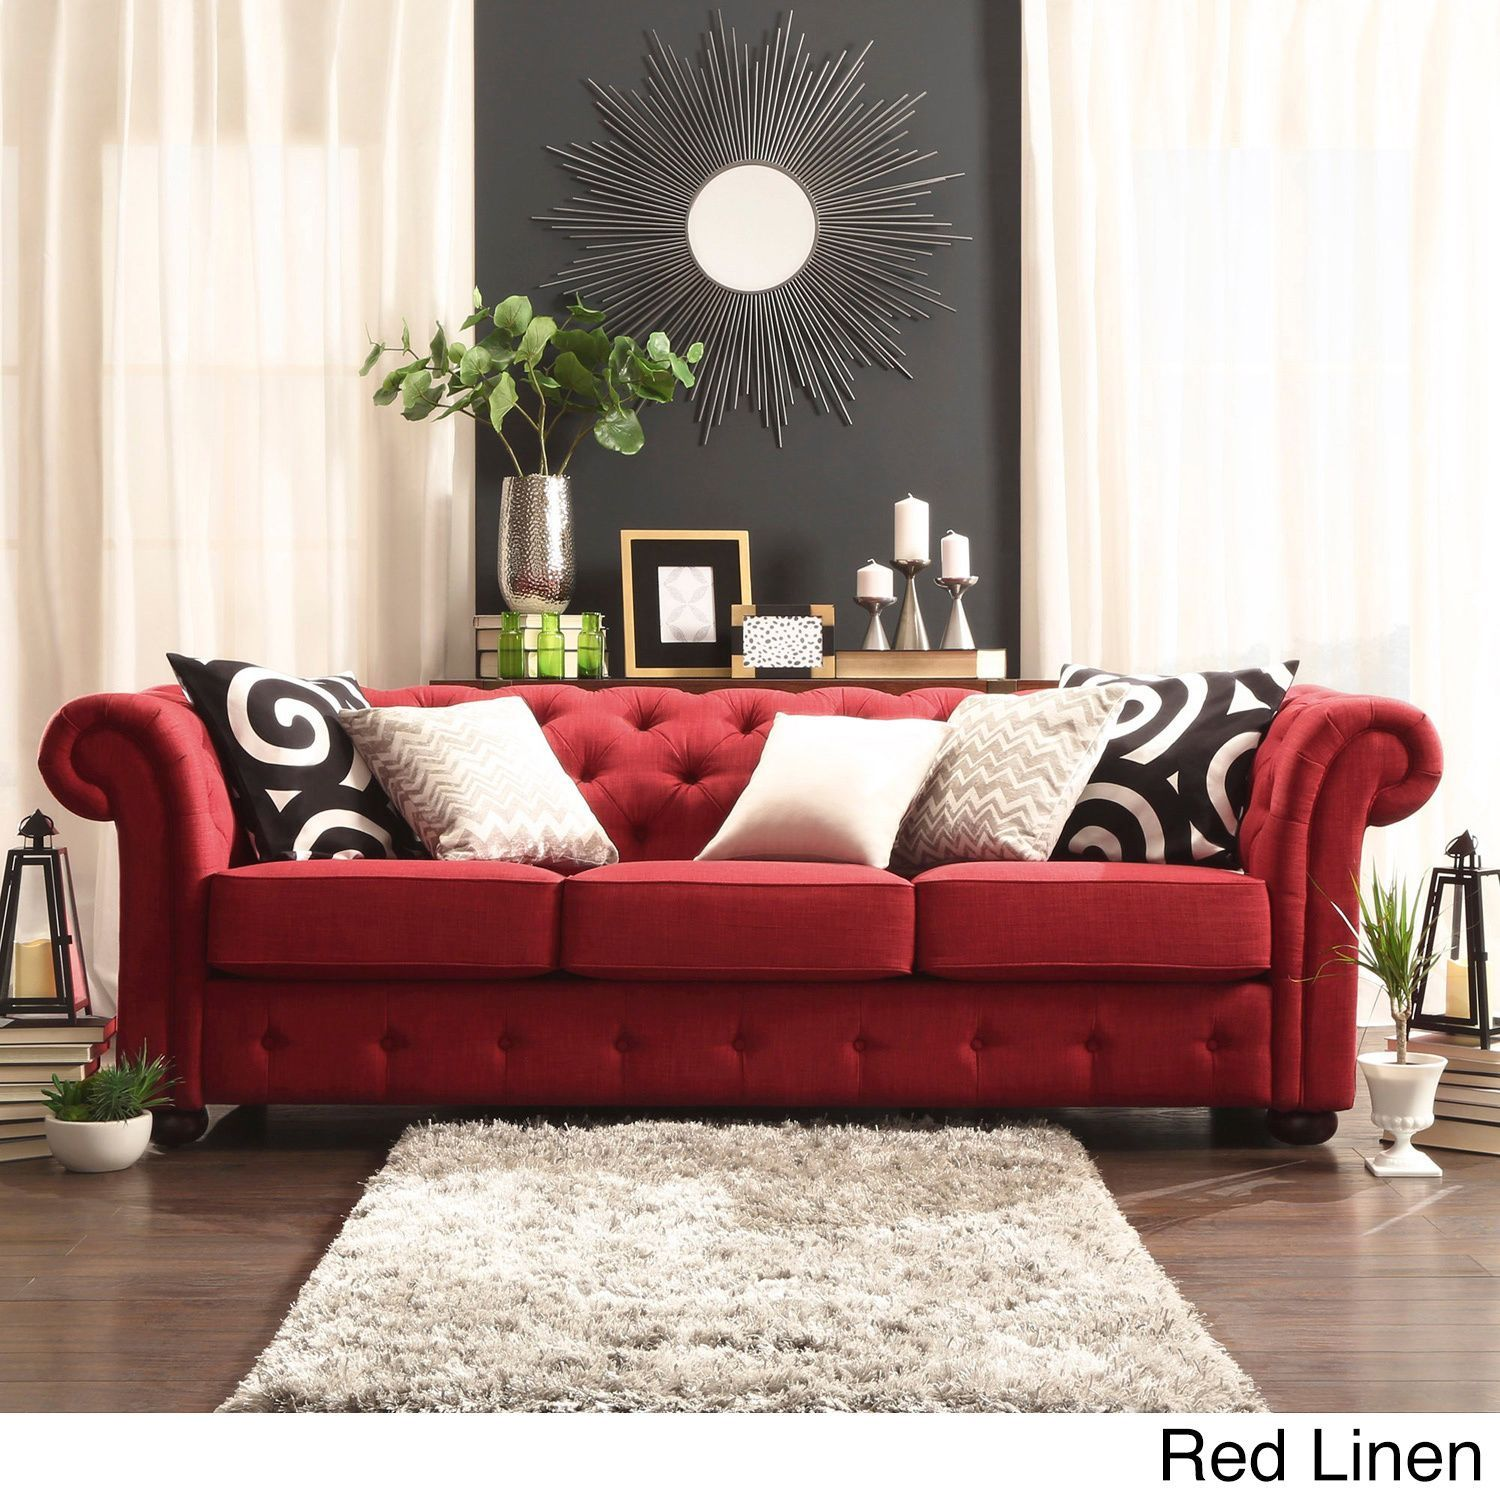 sofa designs in red colour navy leather sectional tribecca home knightsbridge tufted scroll arm chesterfield